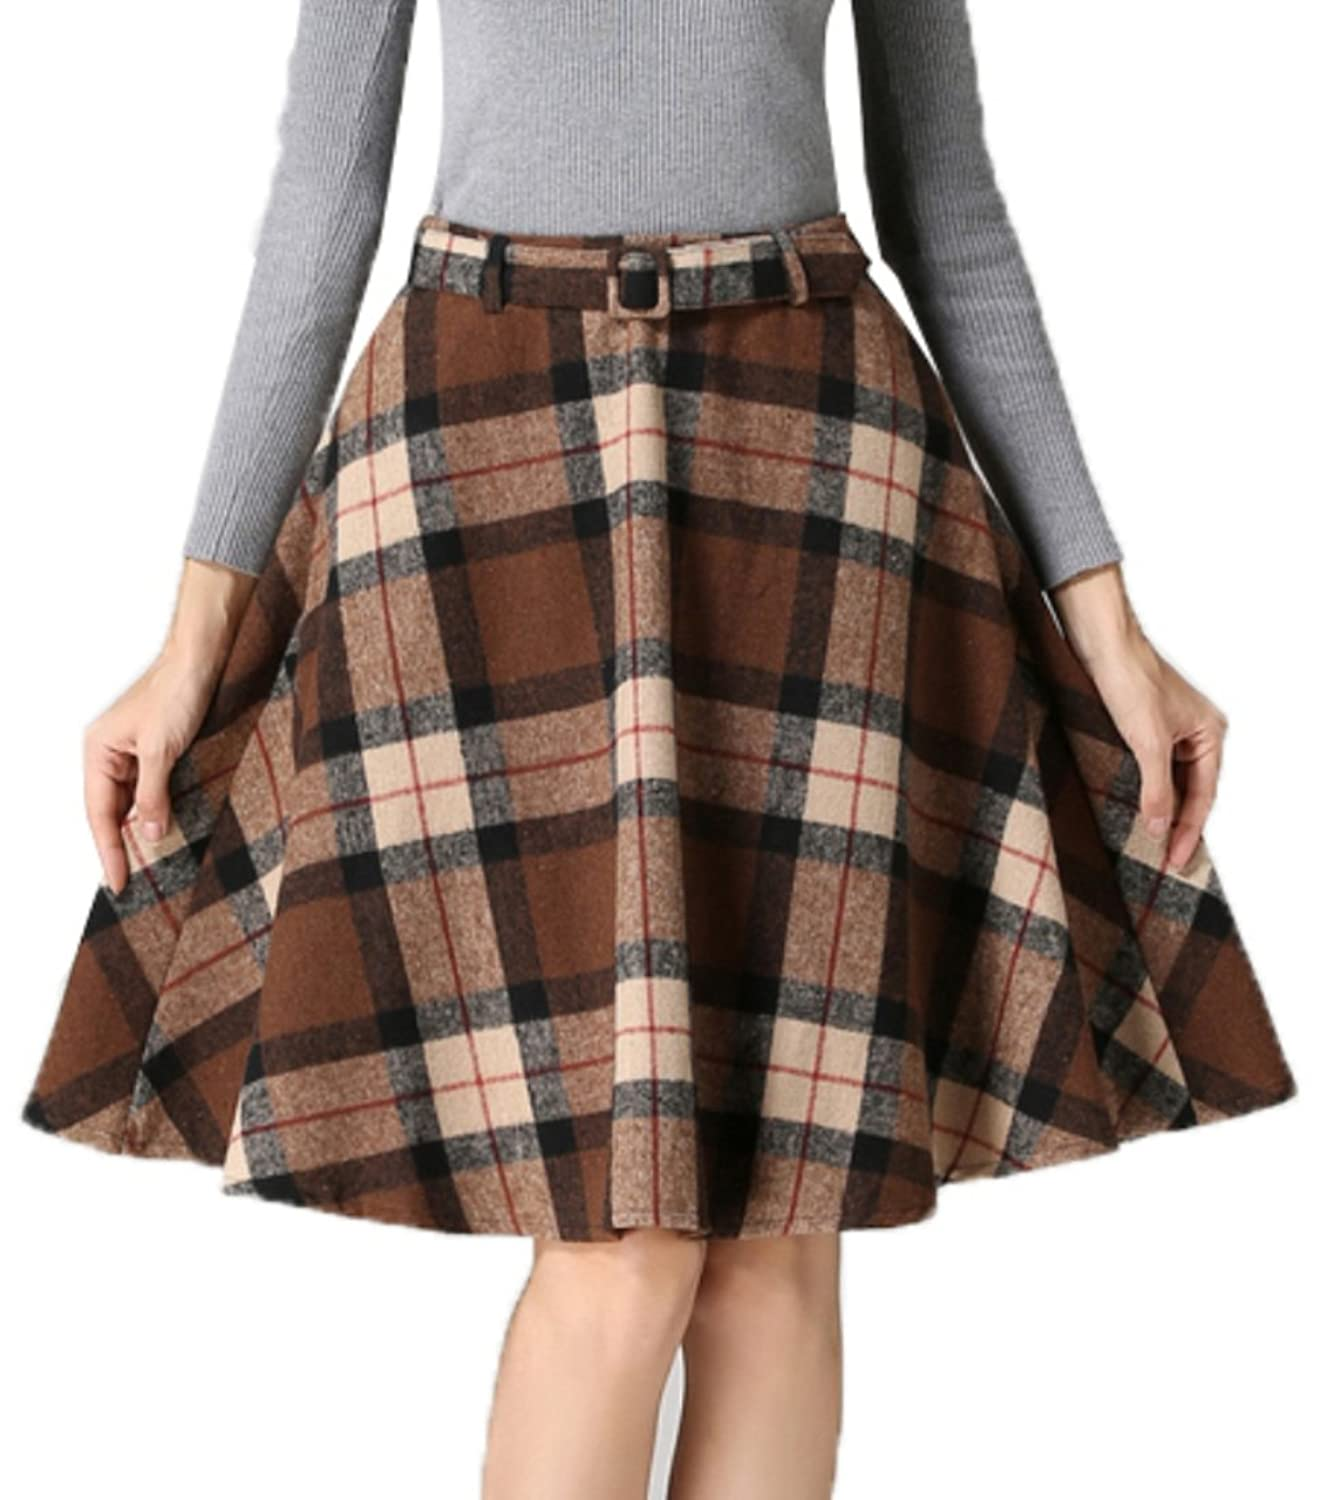 1960s Style Skirts Sankill Womens High Waisted Wool Check Print Plaid Aline Skirt $21.99 AT vintagedancer.com